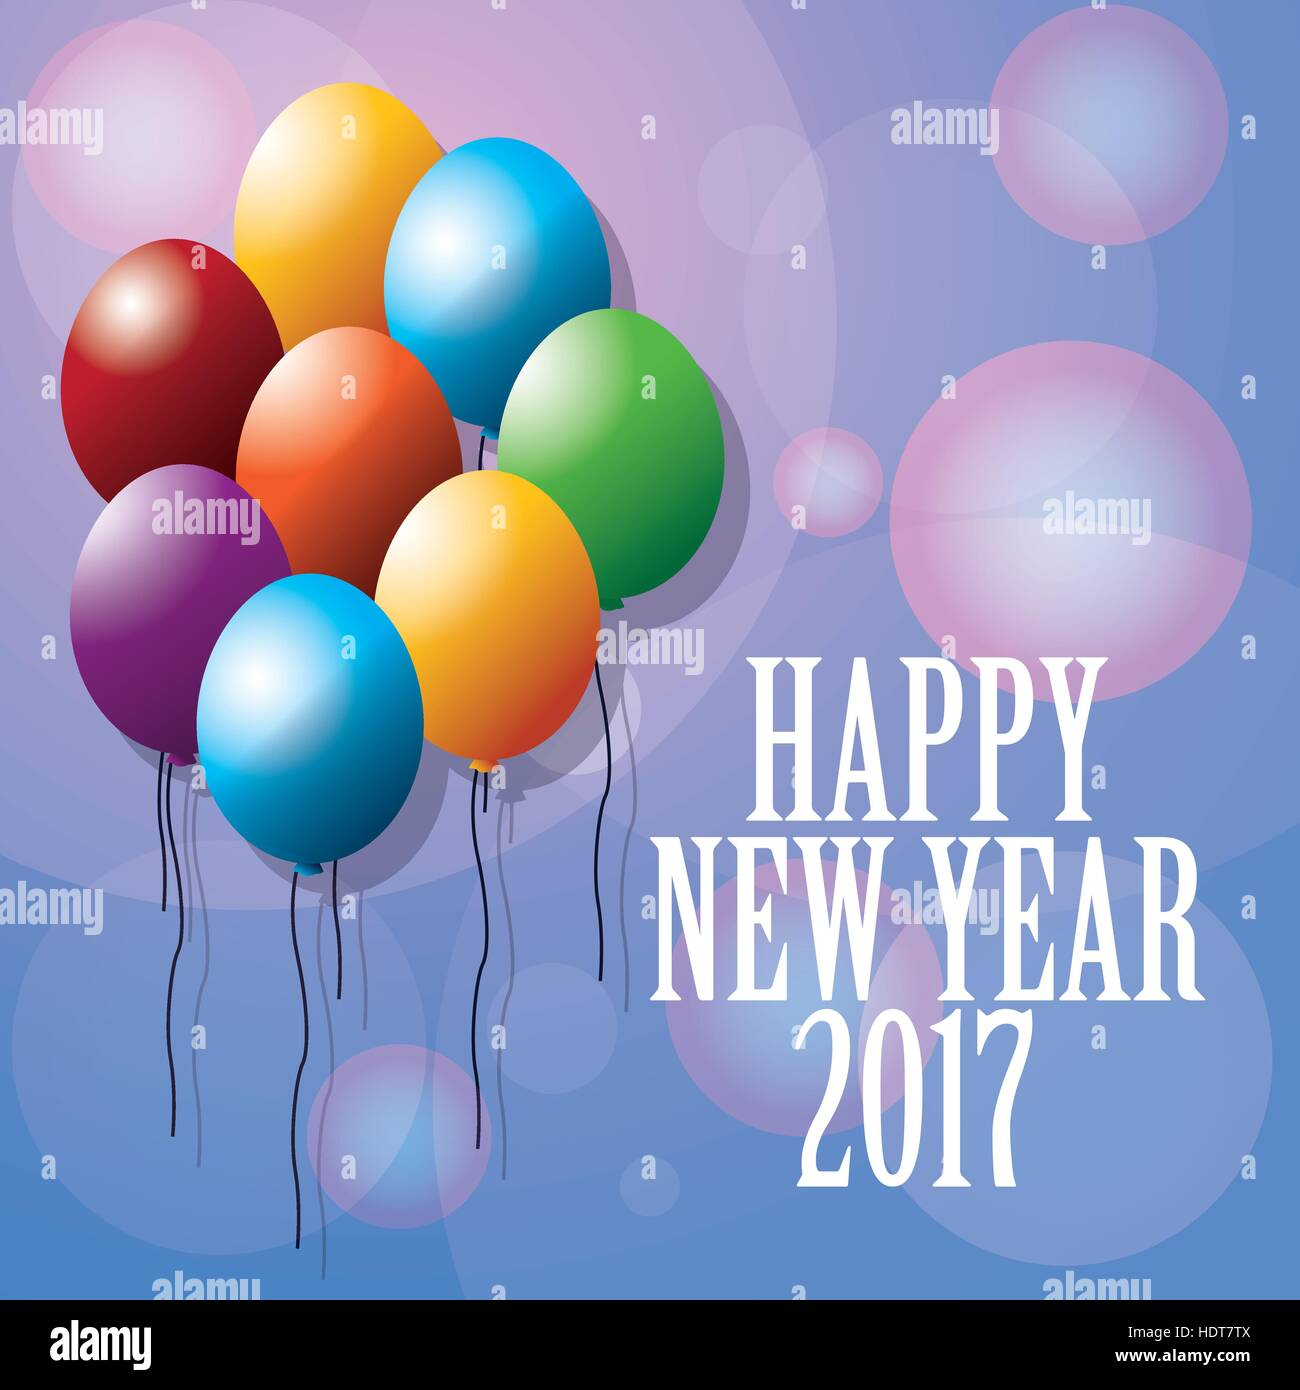 happy new year 2017 greeting card ed balloons blurred background - Stock Vector